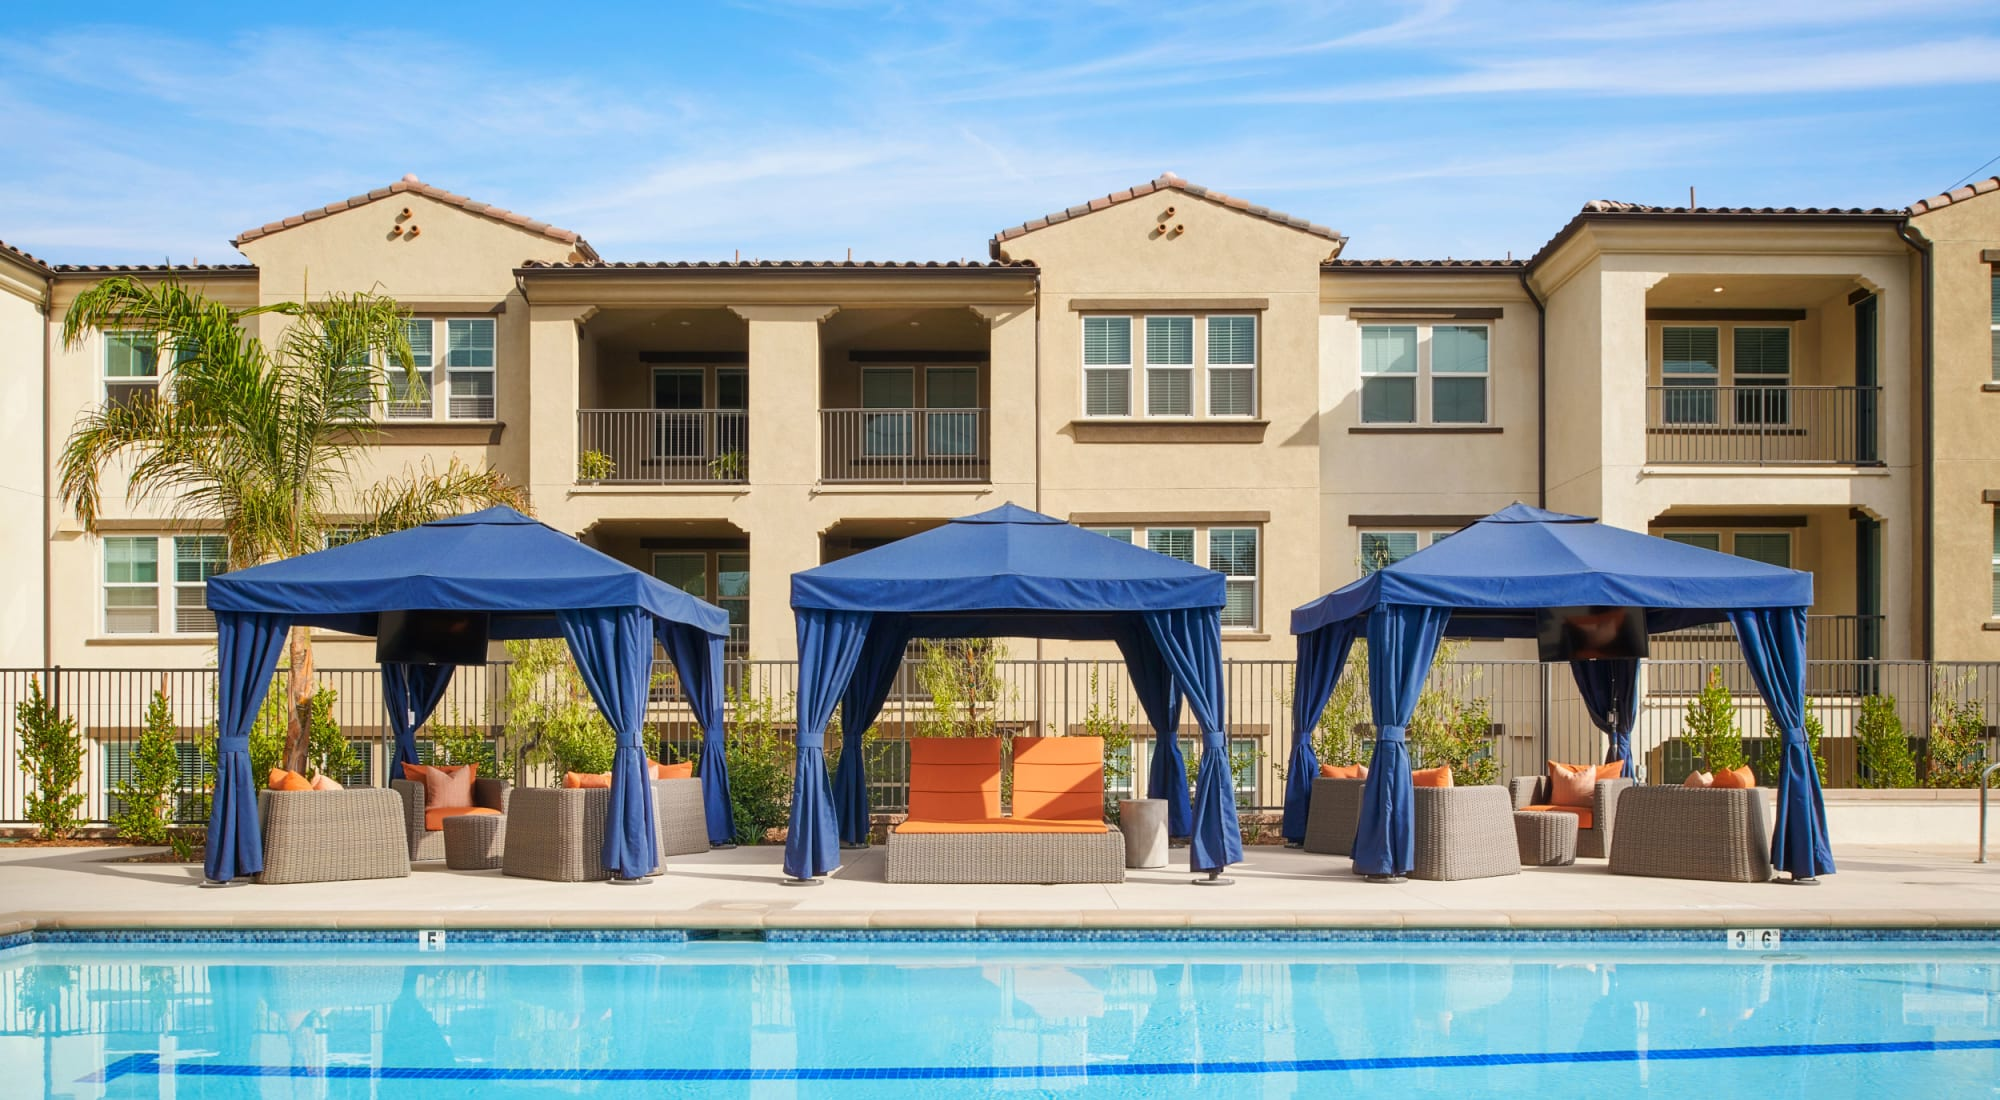 East Riverside, CA Apartments for Rent | The Trails at ...